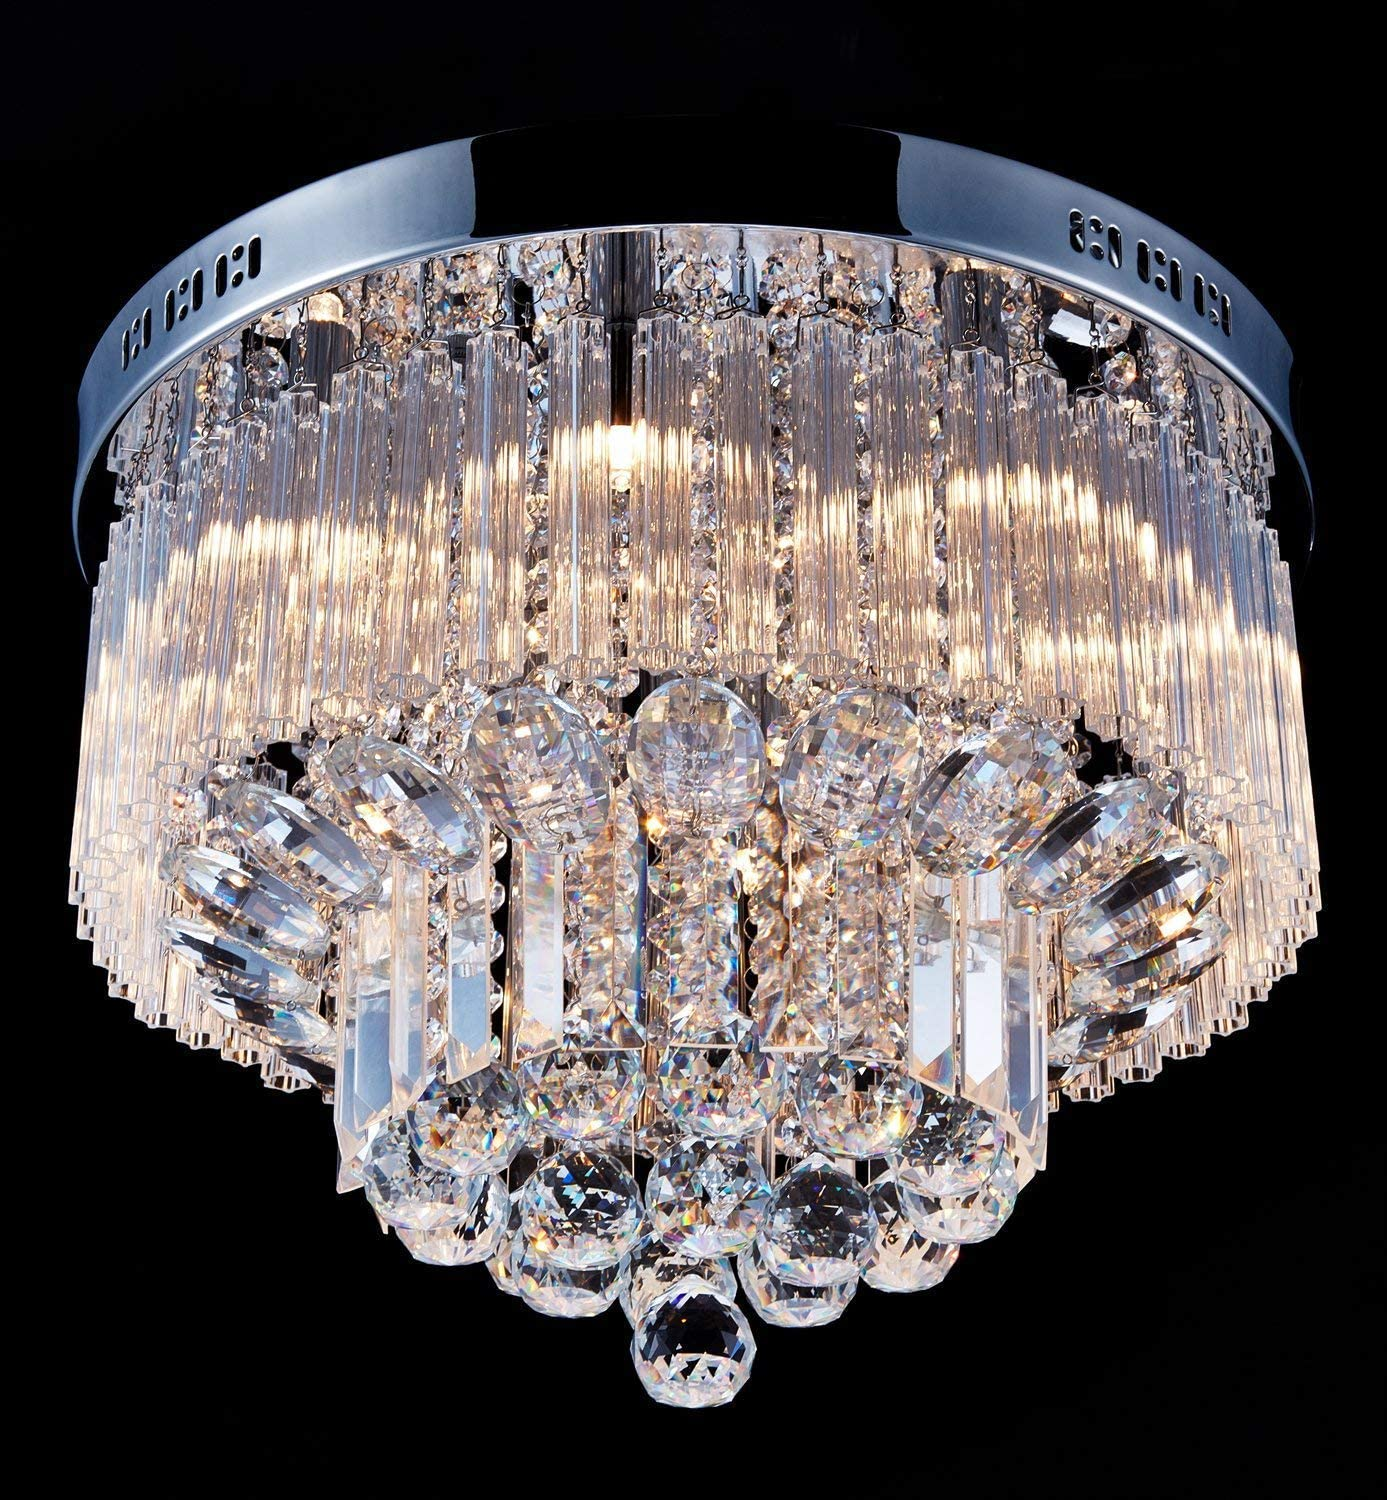 Saint Mossi Chandelier Modern K9 Crystal Raindrop Chandelier Lighting Flush Mount LED Ceiling Light Fixture Pendant Lamp for Dining Room Bathroom Bedroom Livingroom 9 G9 Bulbs Required H12 X D18